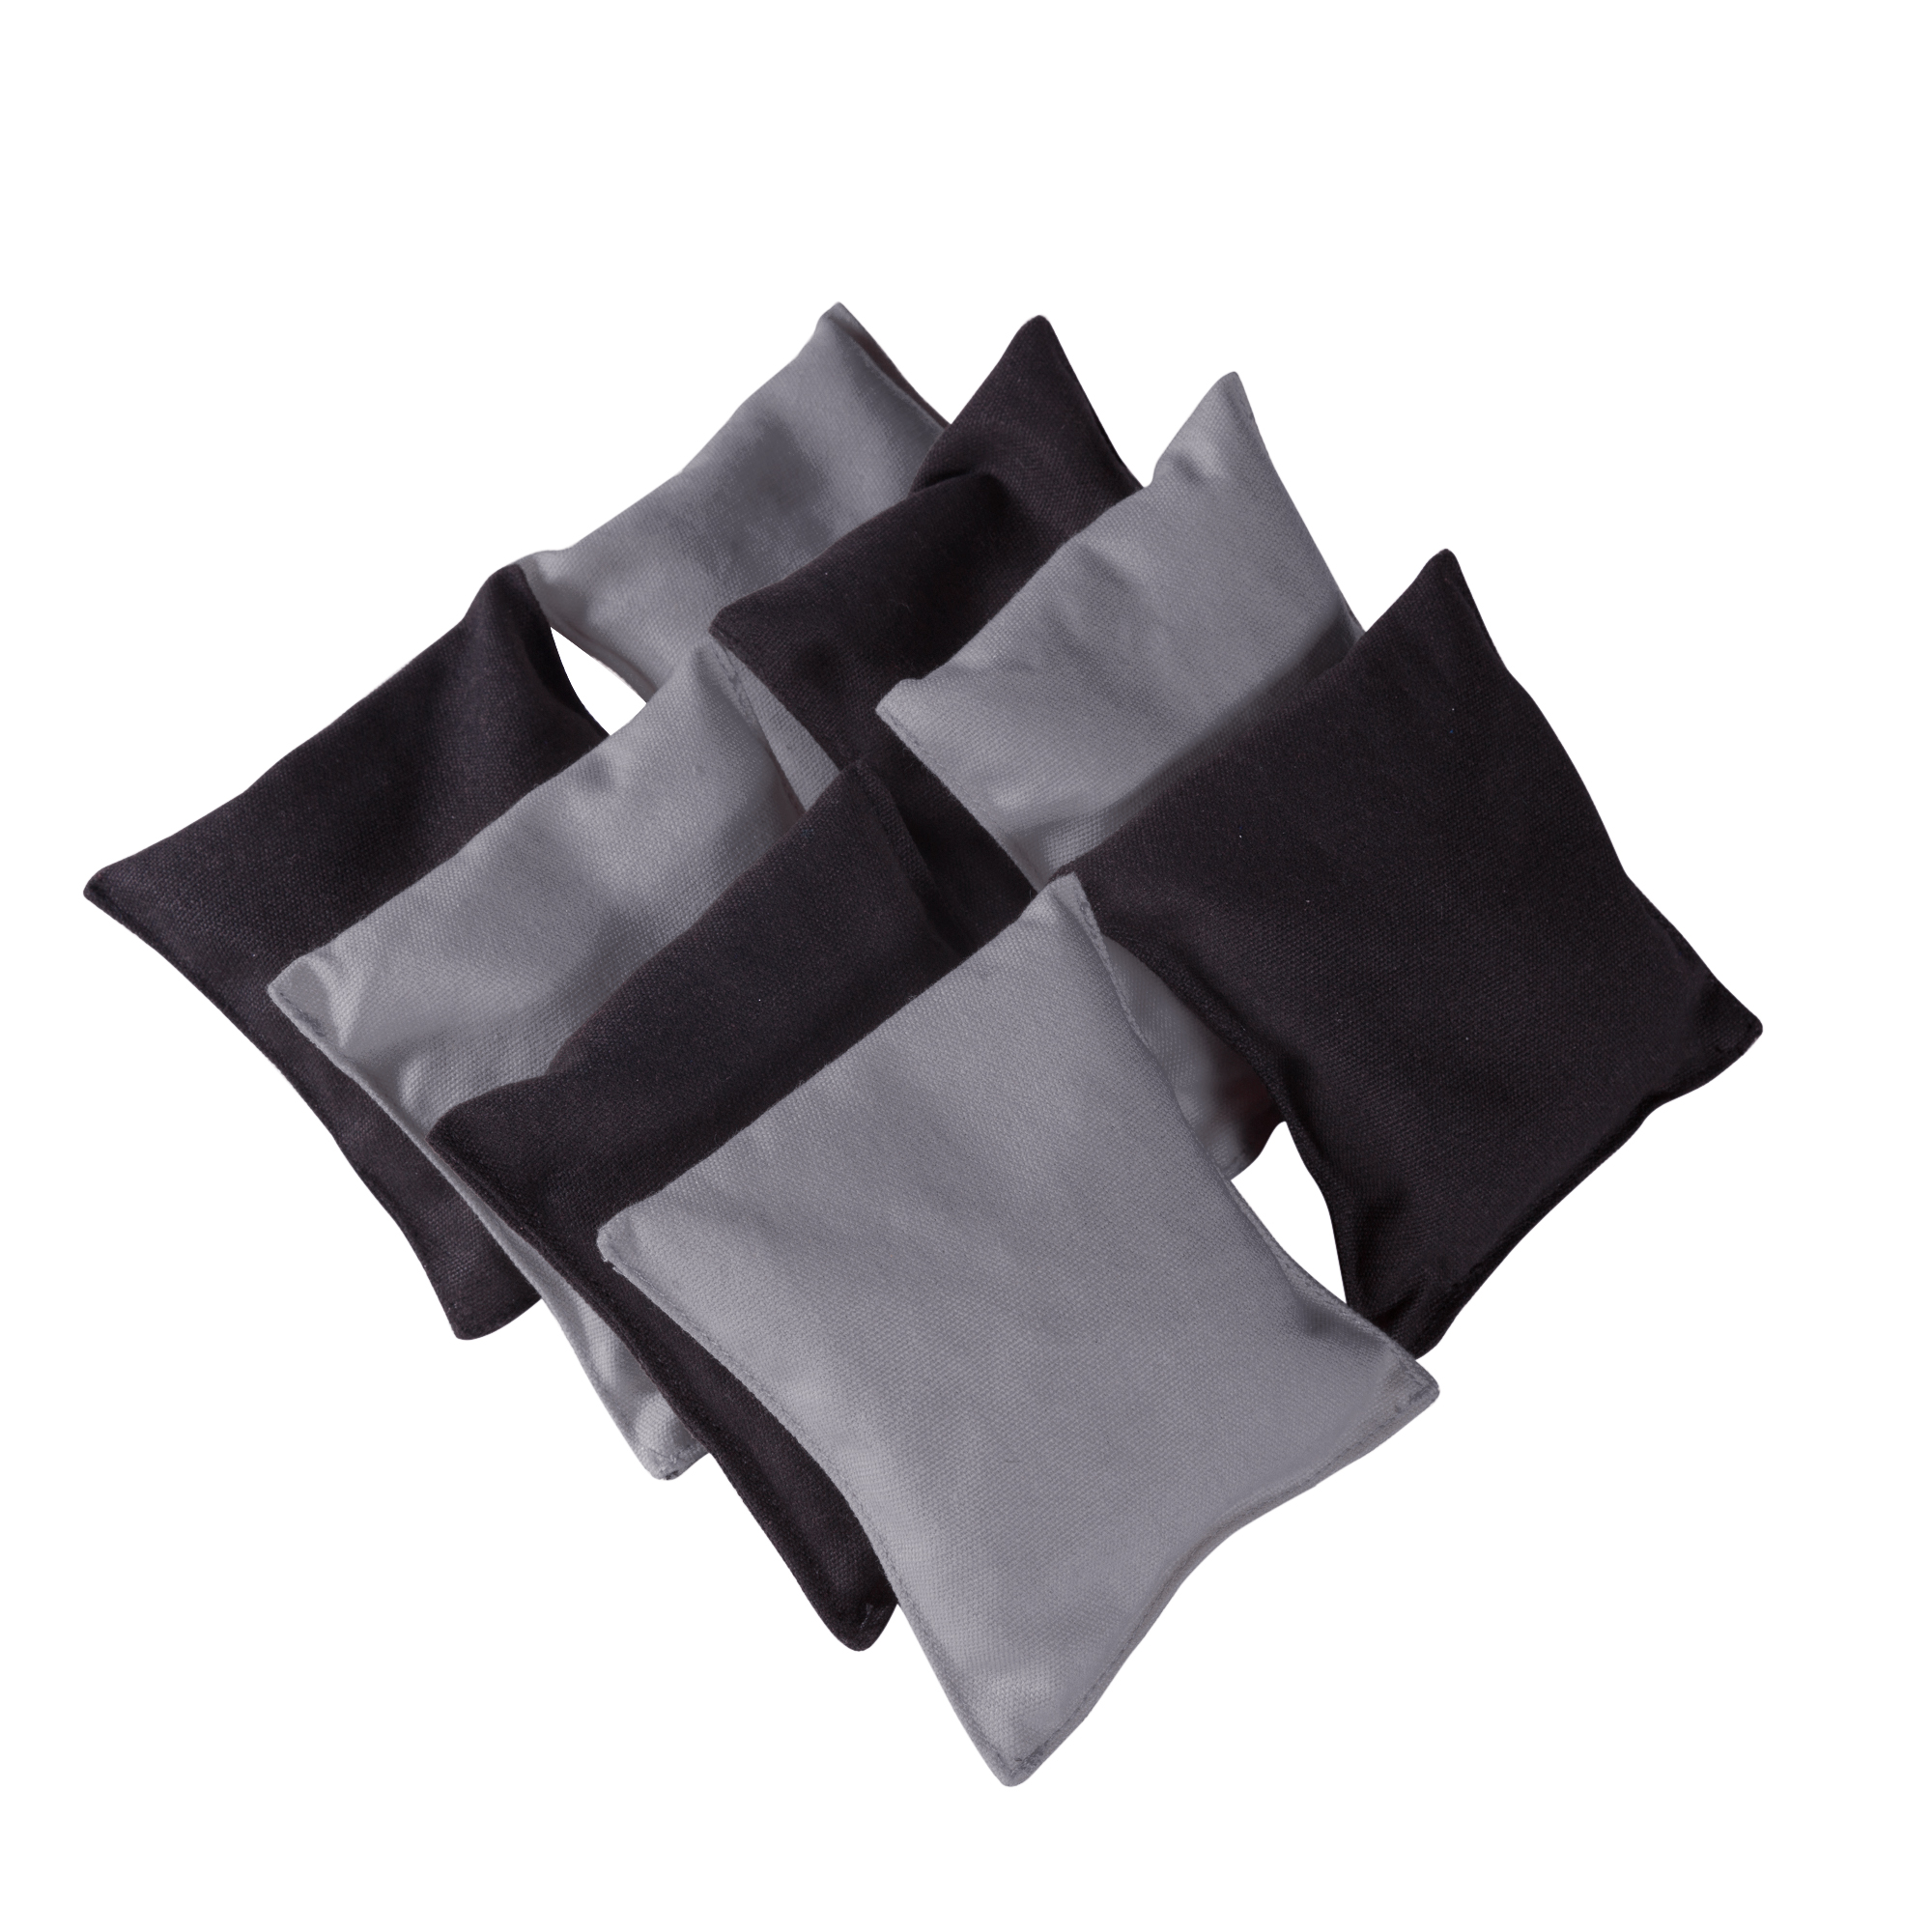 Cornhole Beanbags Replacement 4 Silver & 4 Black (8 Bags) by Phelps Group